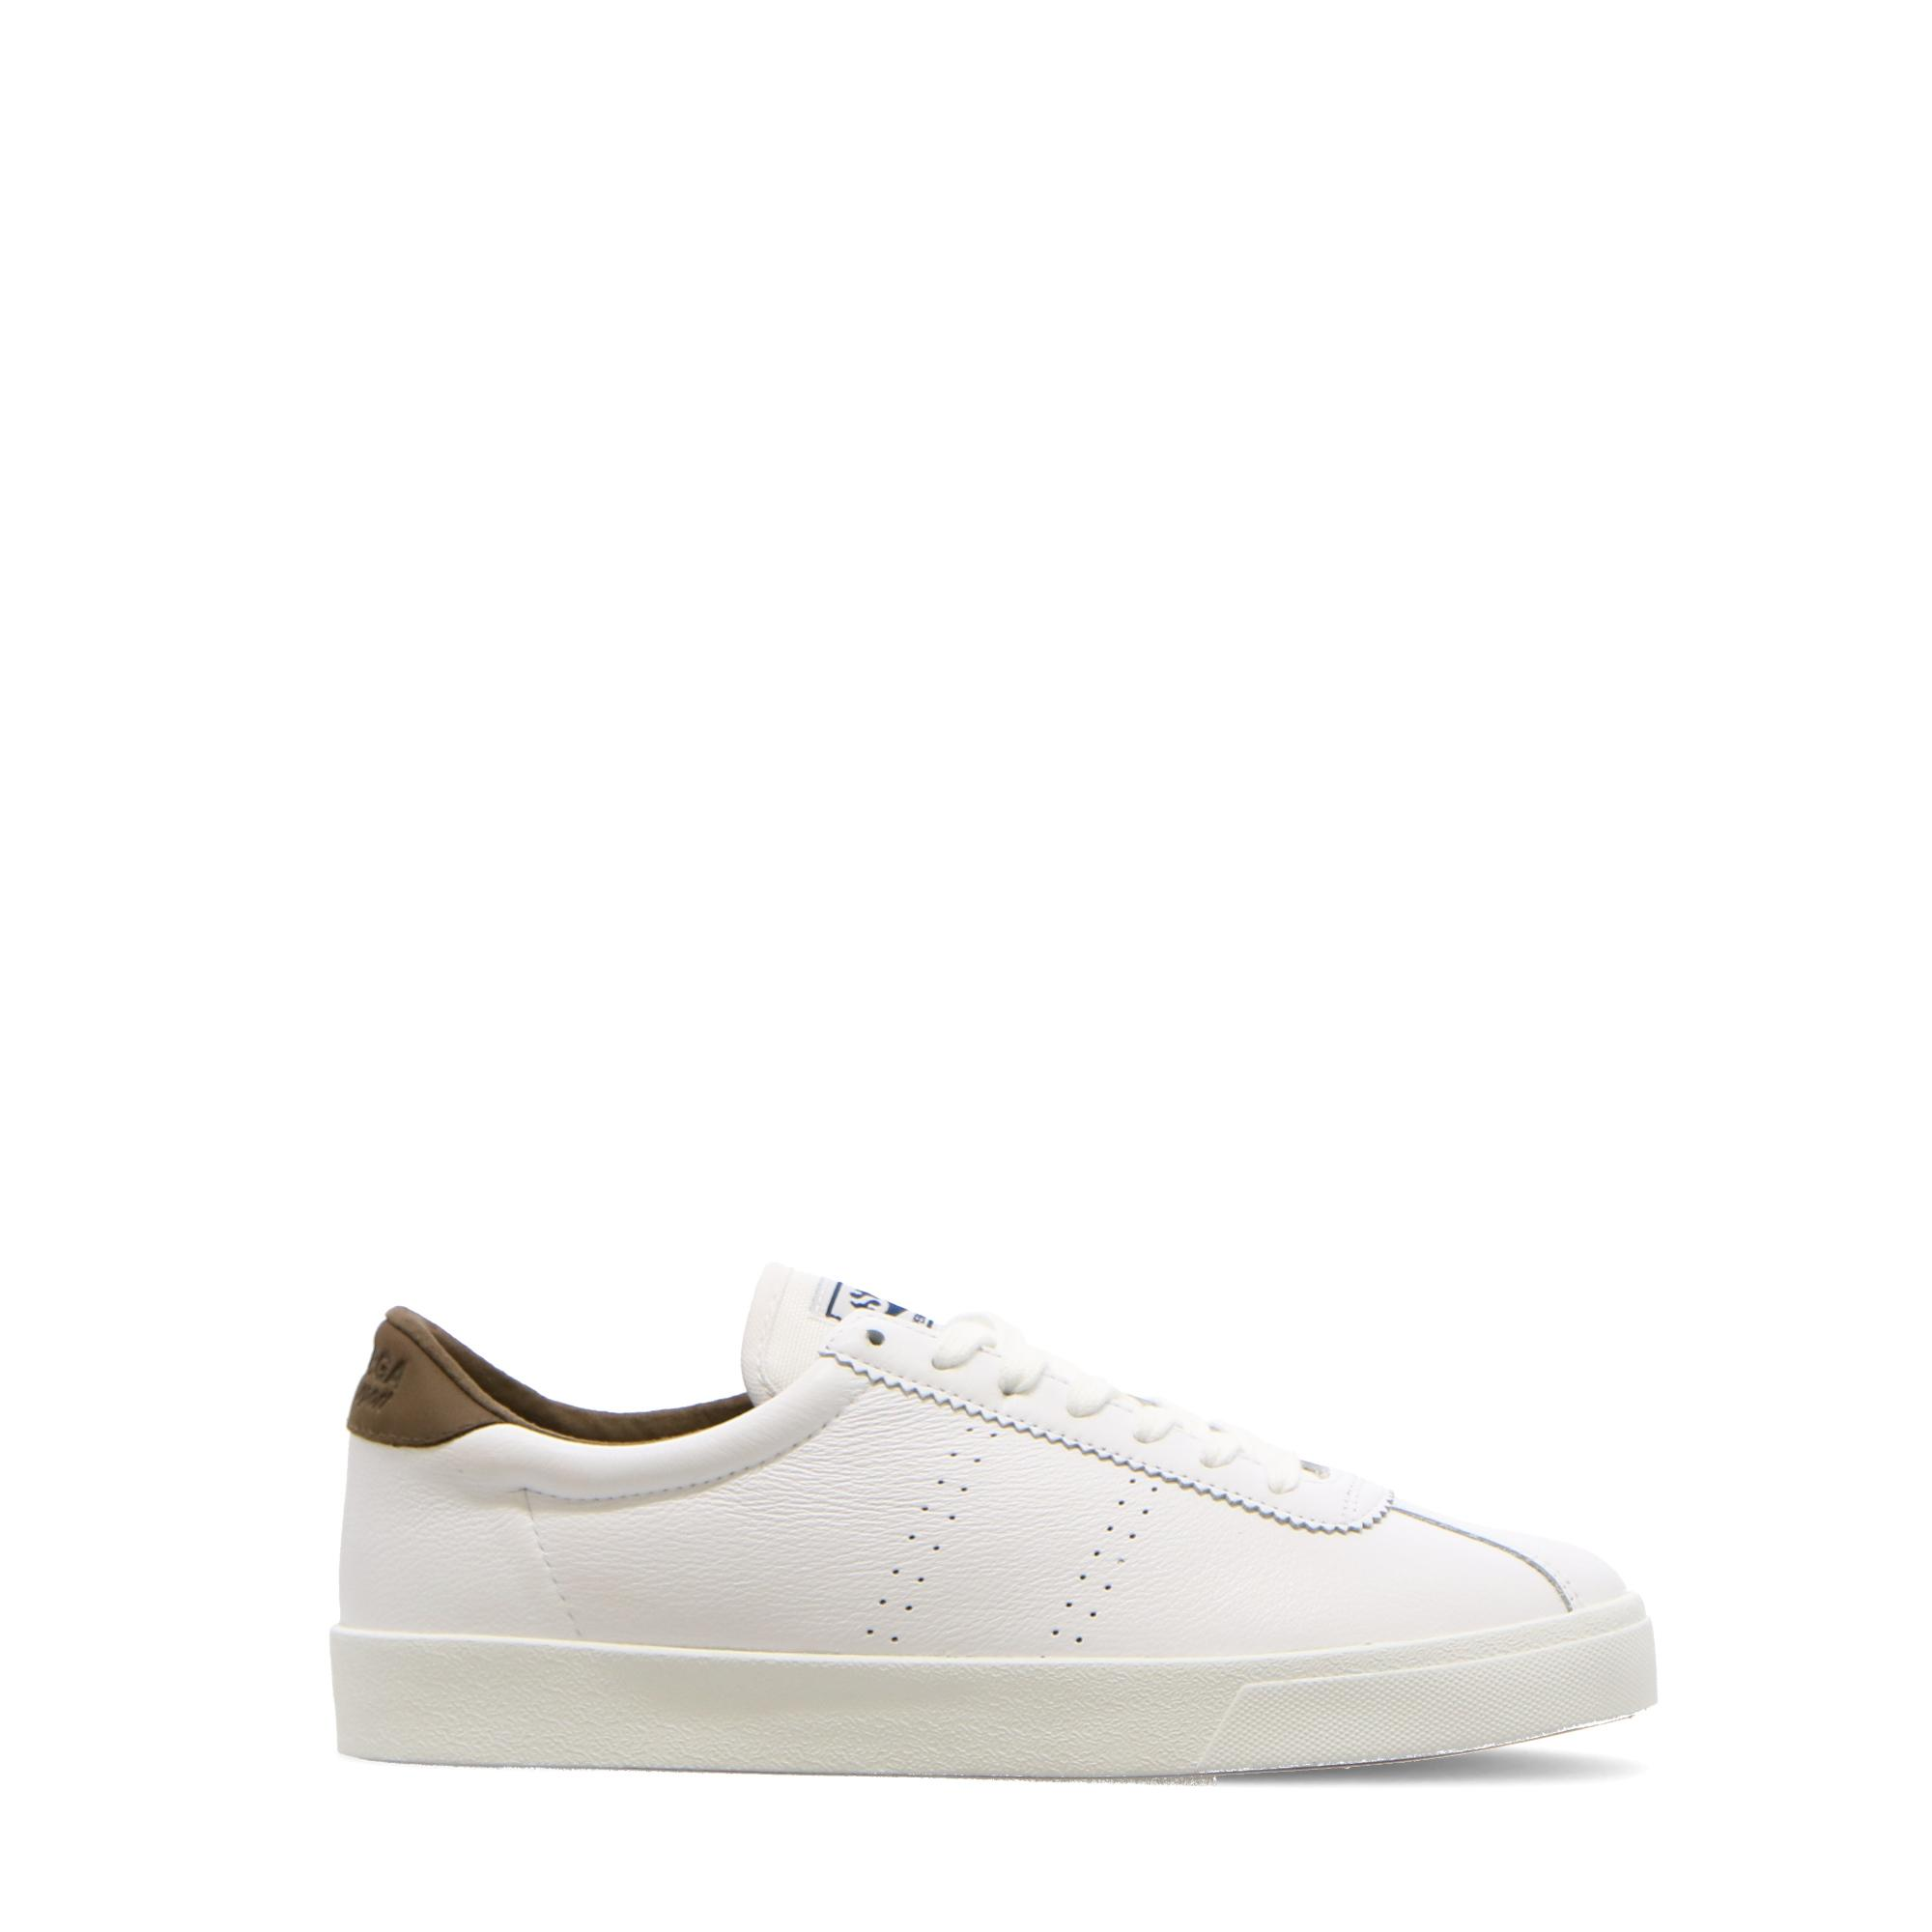 Superga 2843 Clubs Comfleau White military green